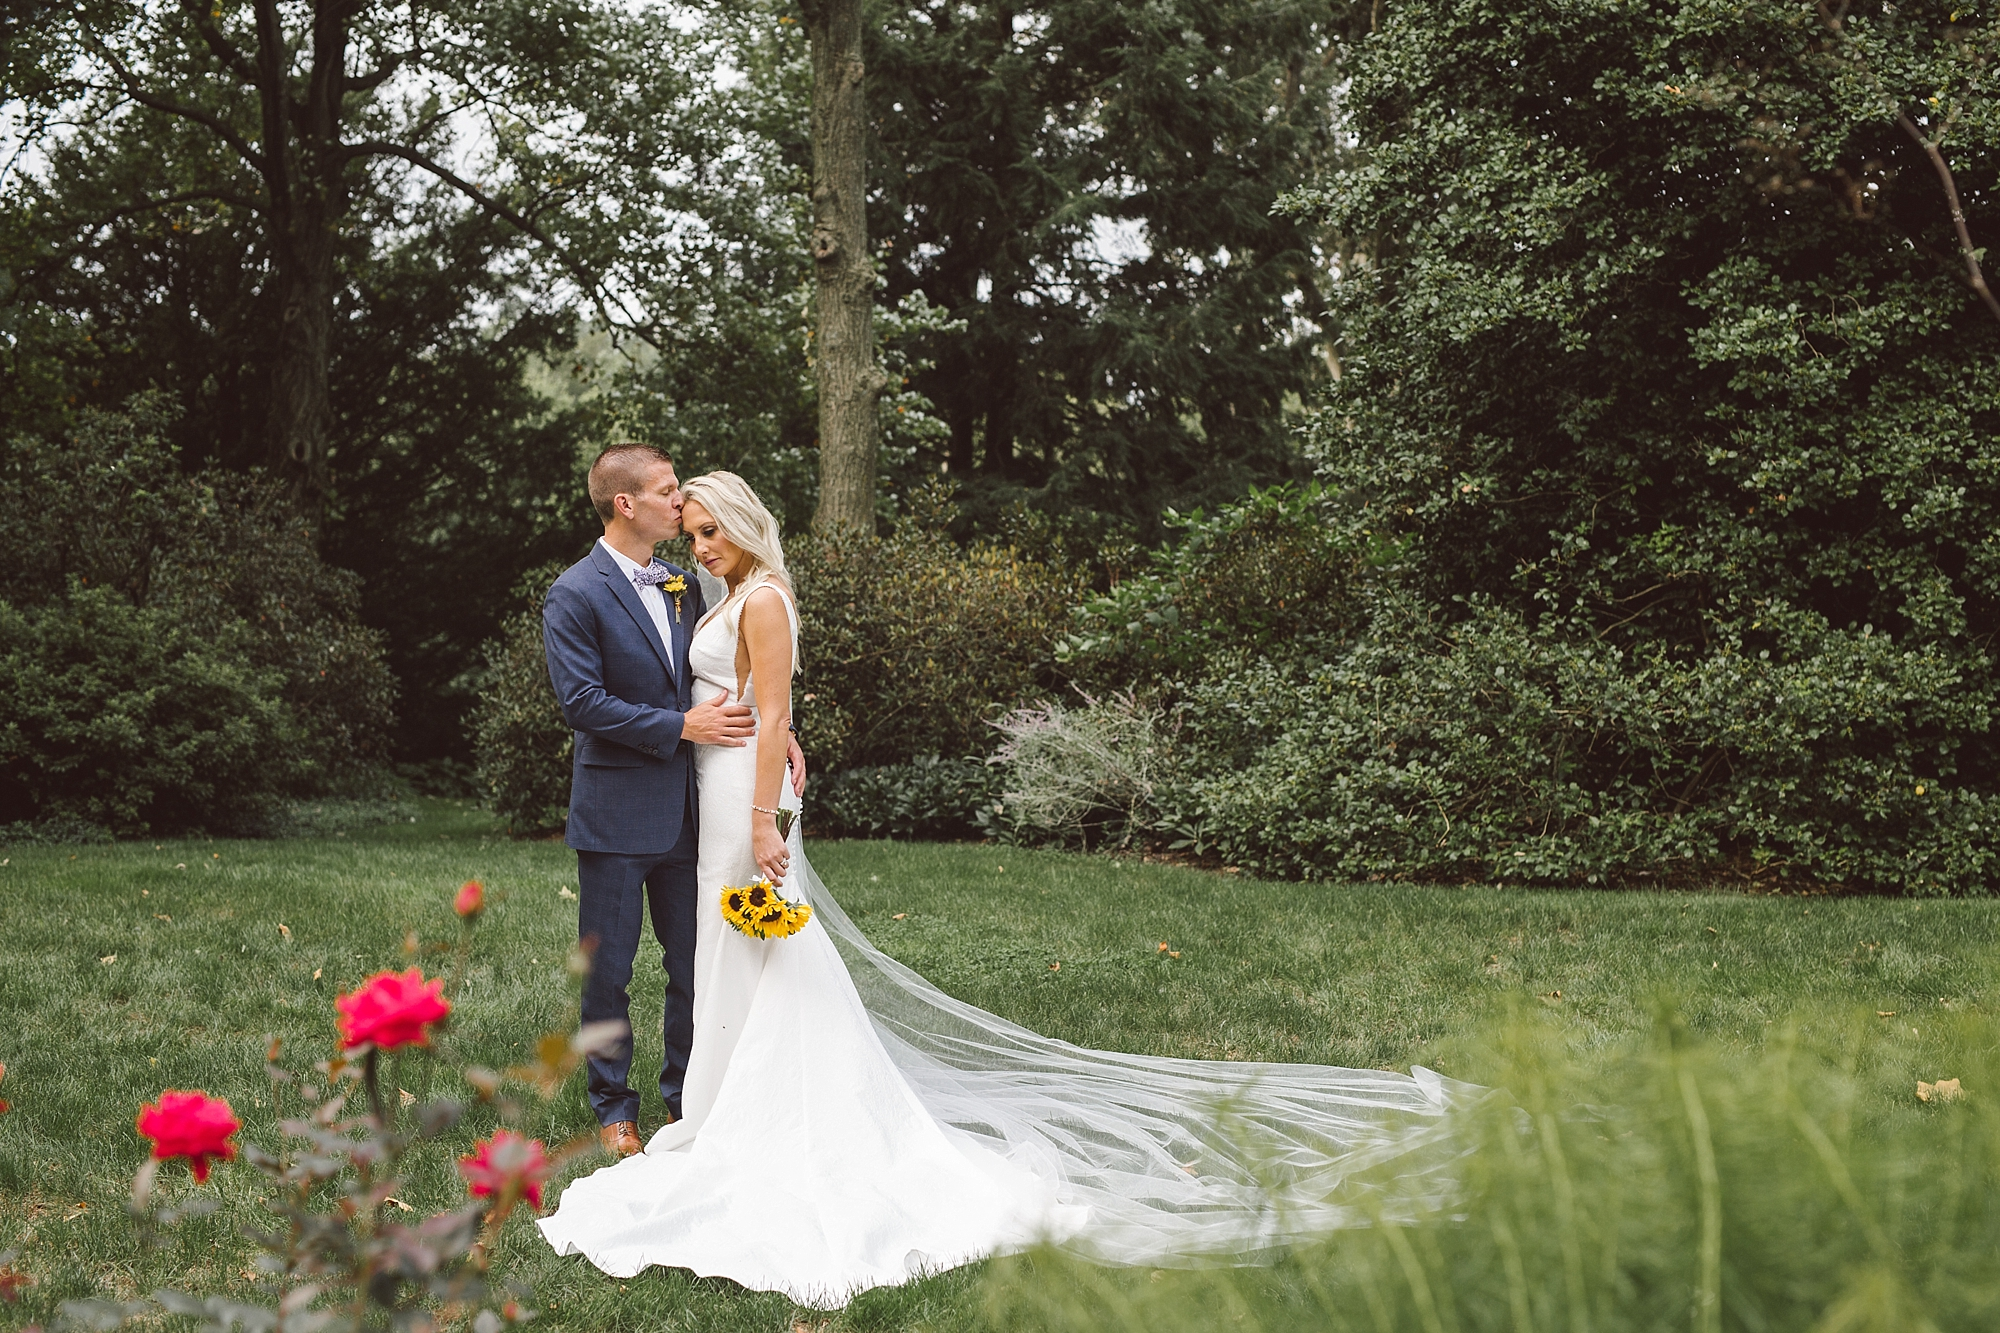 Druemore_Joe_Mac_Creative_Philadelphila_Wedding_Photography_drumore_estate_pequea_Best_lancaster_wedding_venues_0048.jpg